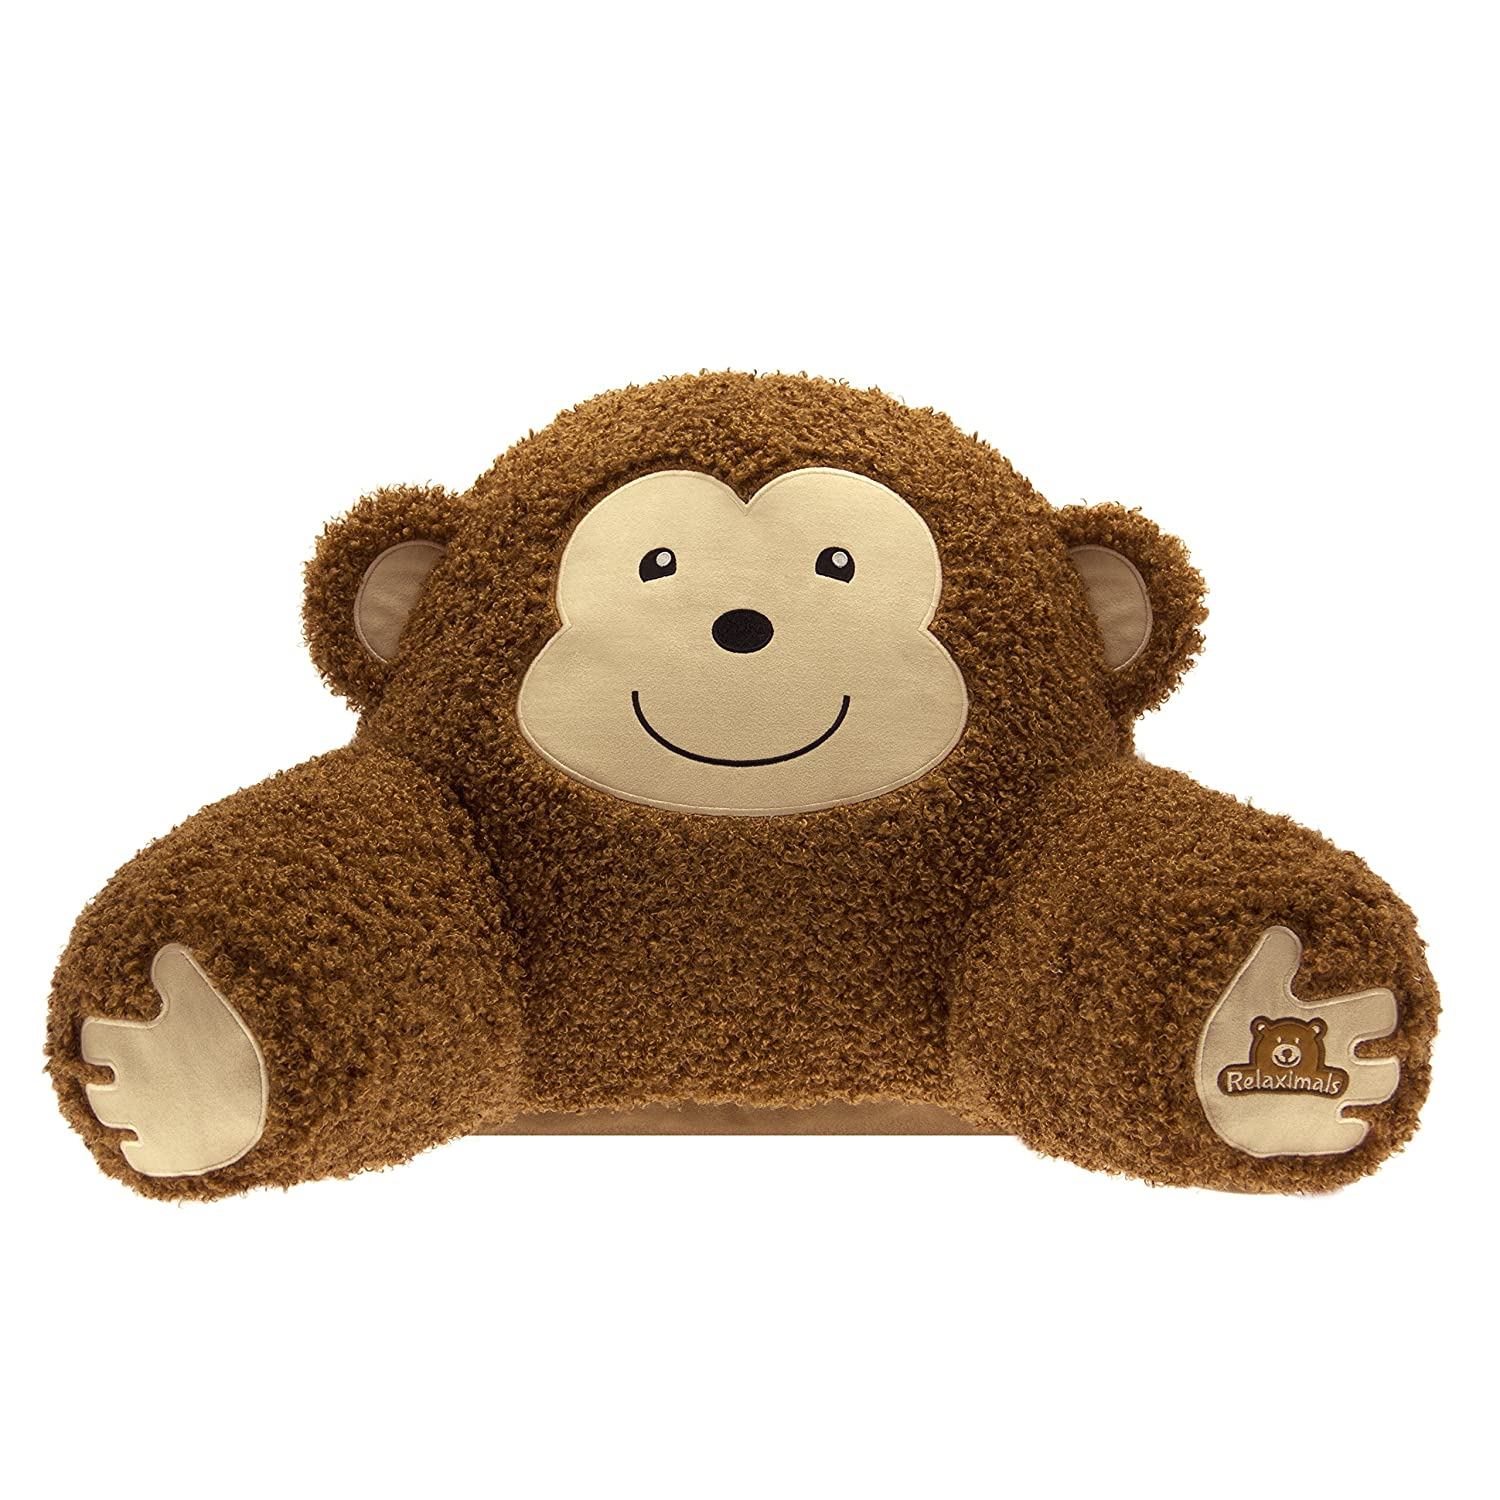 Relaximals Monkey Kids Reading Pillow 91nld0Yq5eL